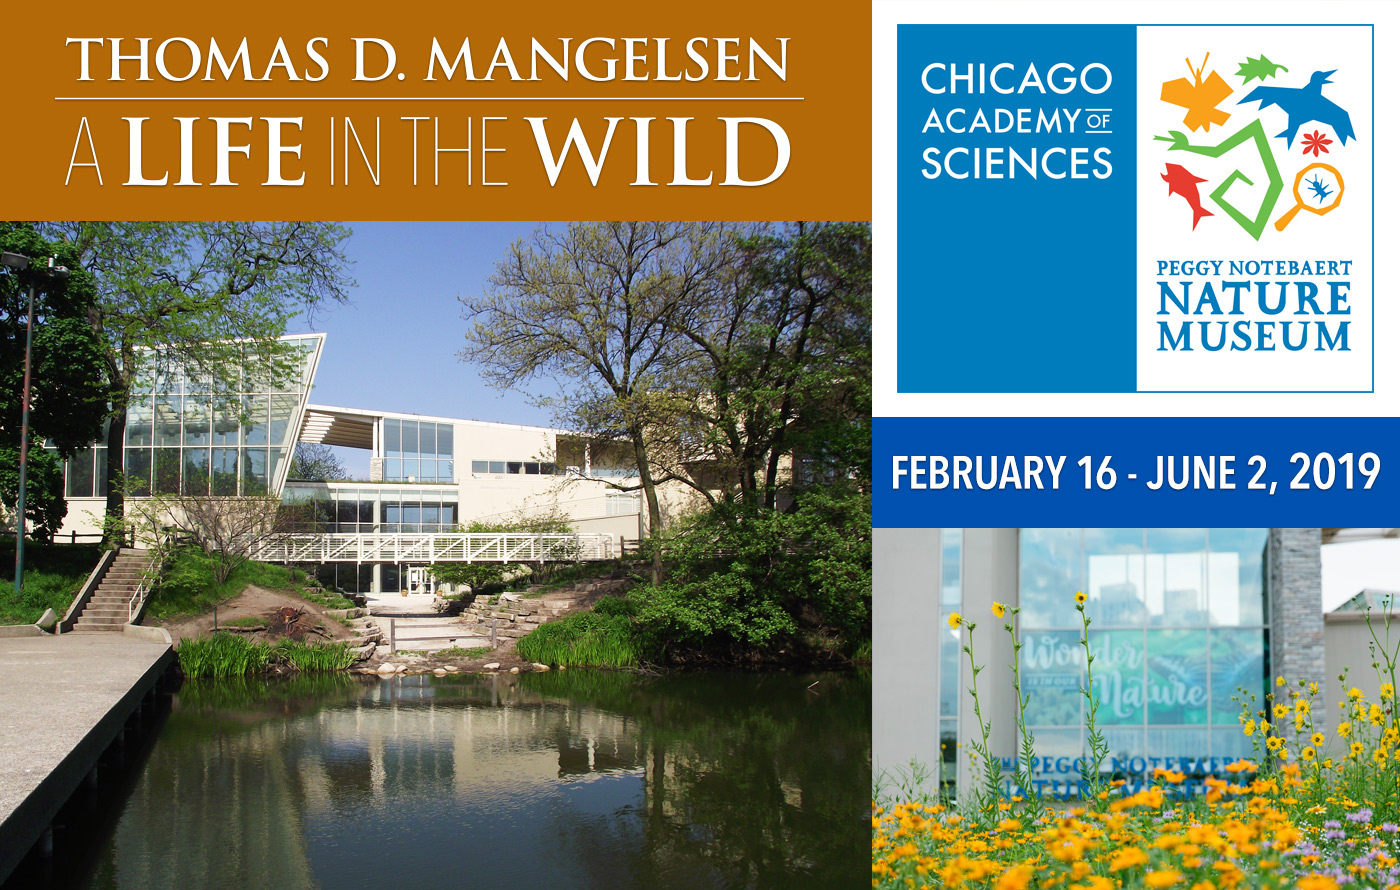 A Life in the Wild exhibition opens in Chicago